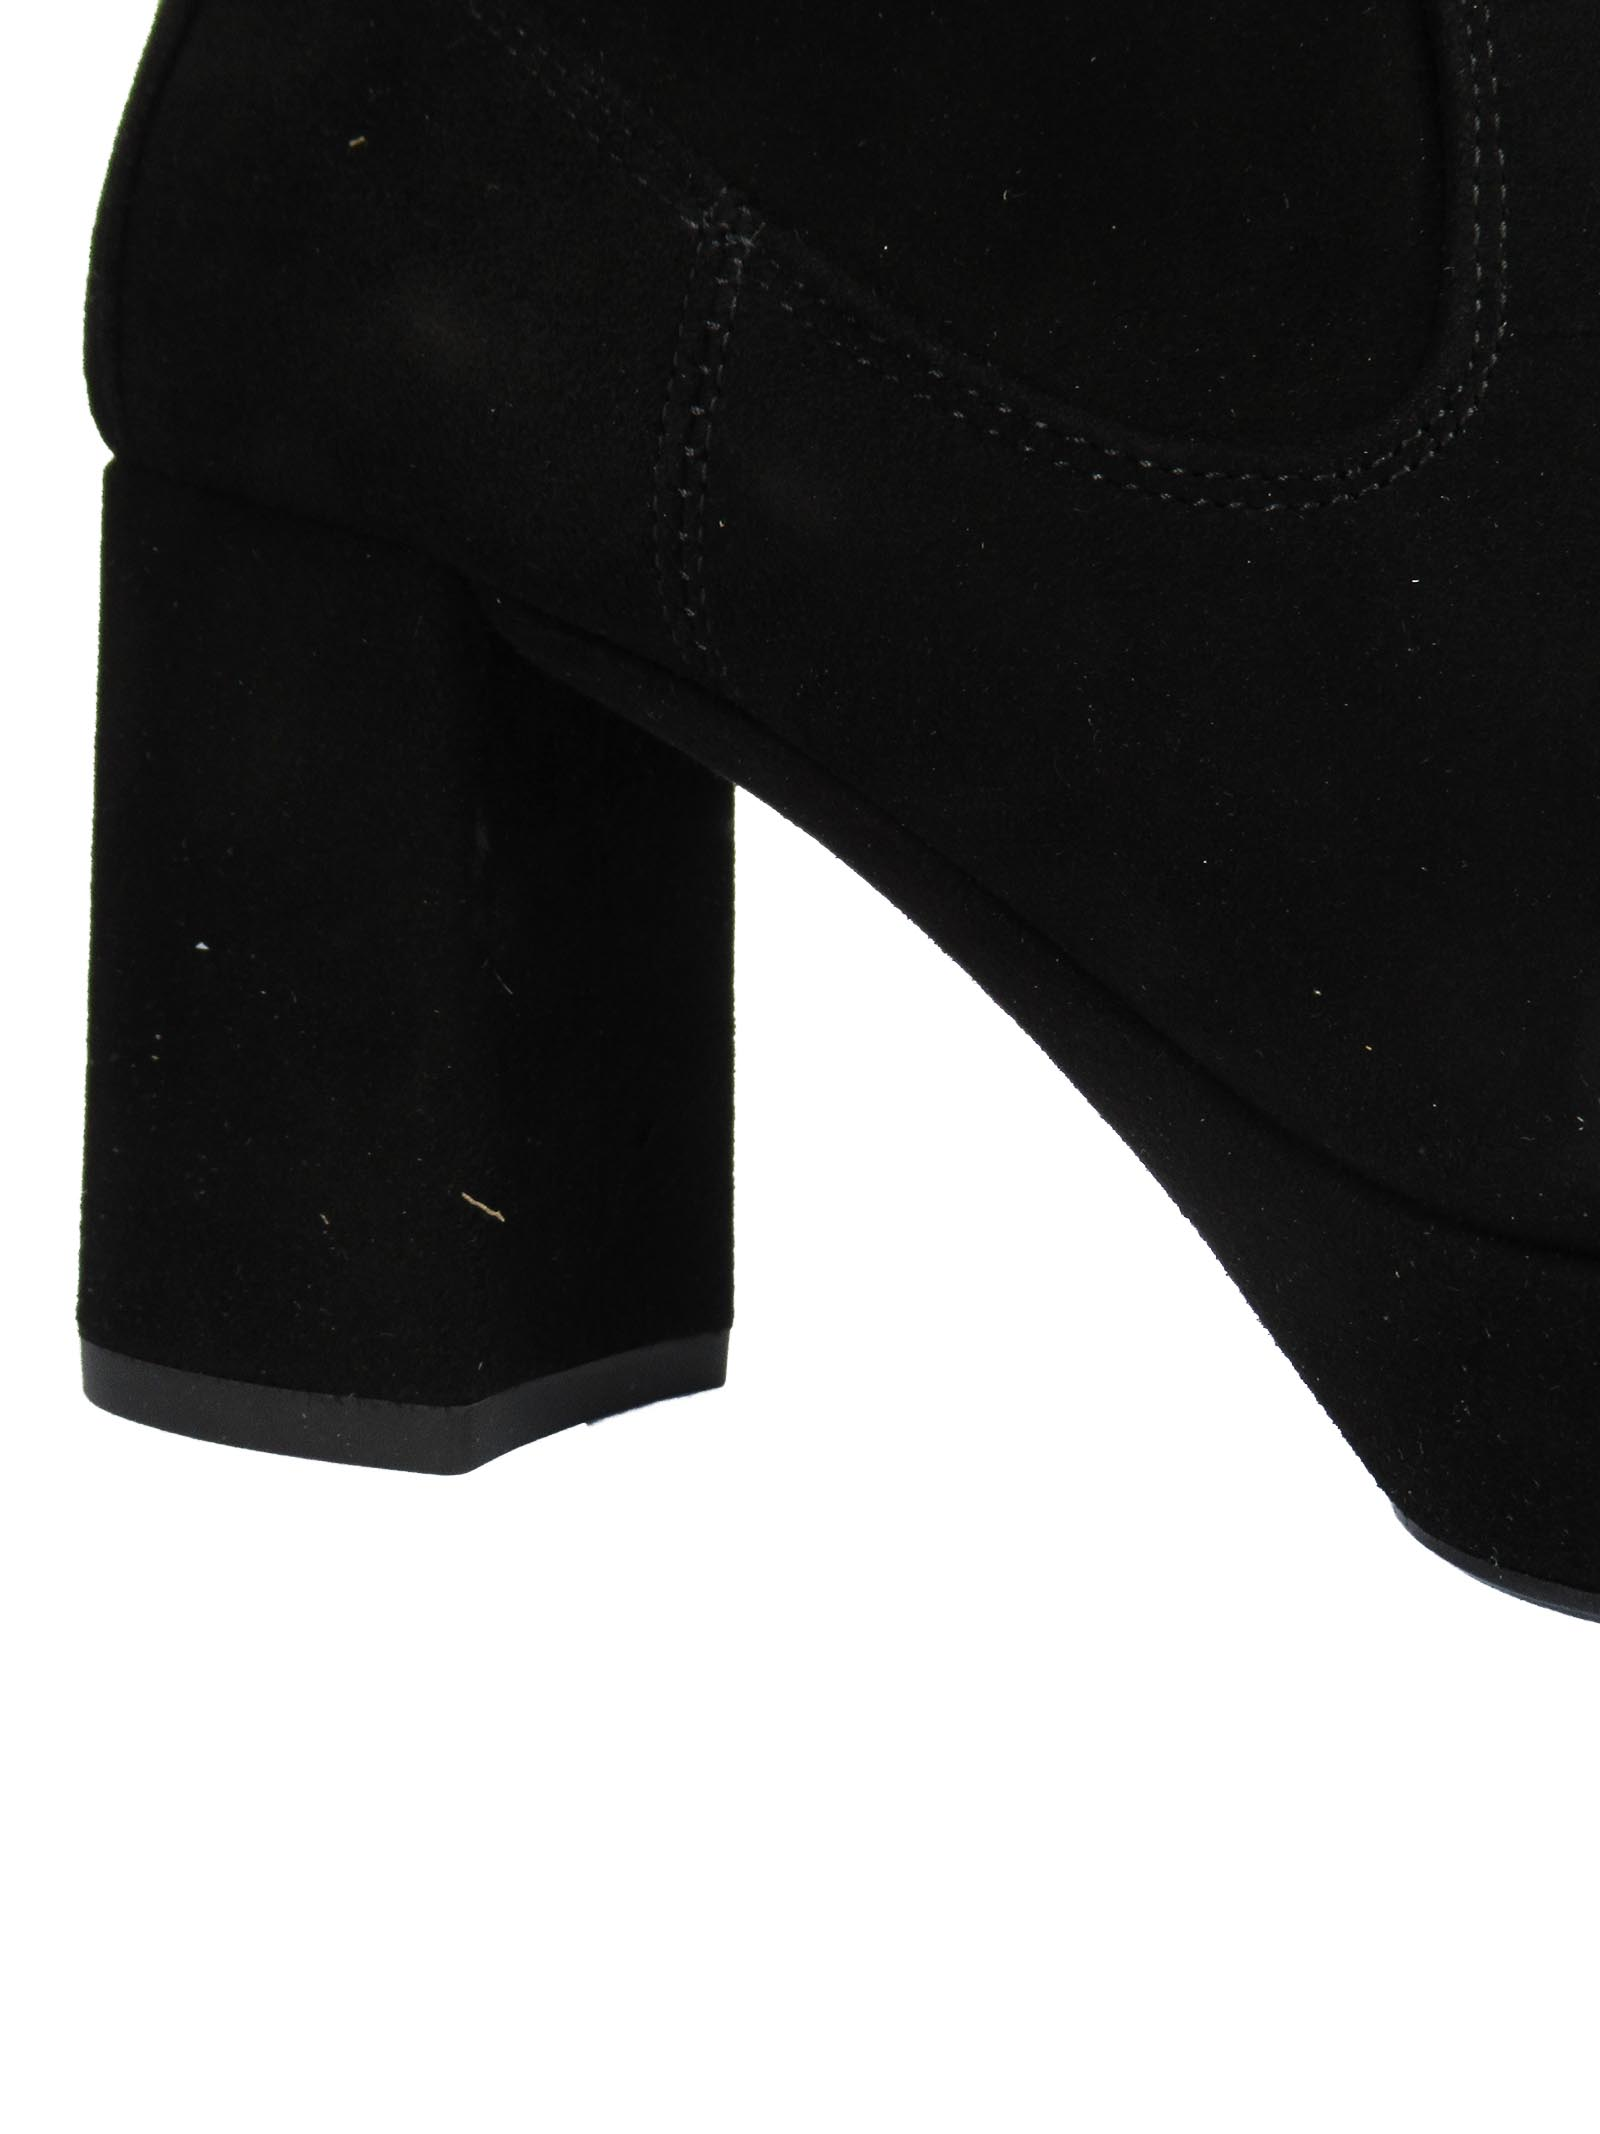 Women's Shoes Ankle Boots in Black Suede with High Heel and Matching Plateau Unisa | Ankle Boots | MUNSETA001